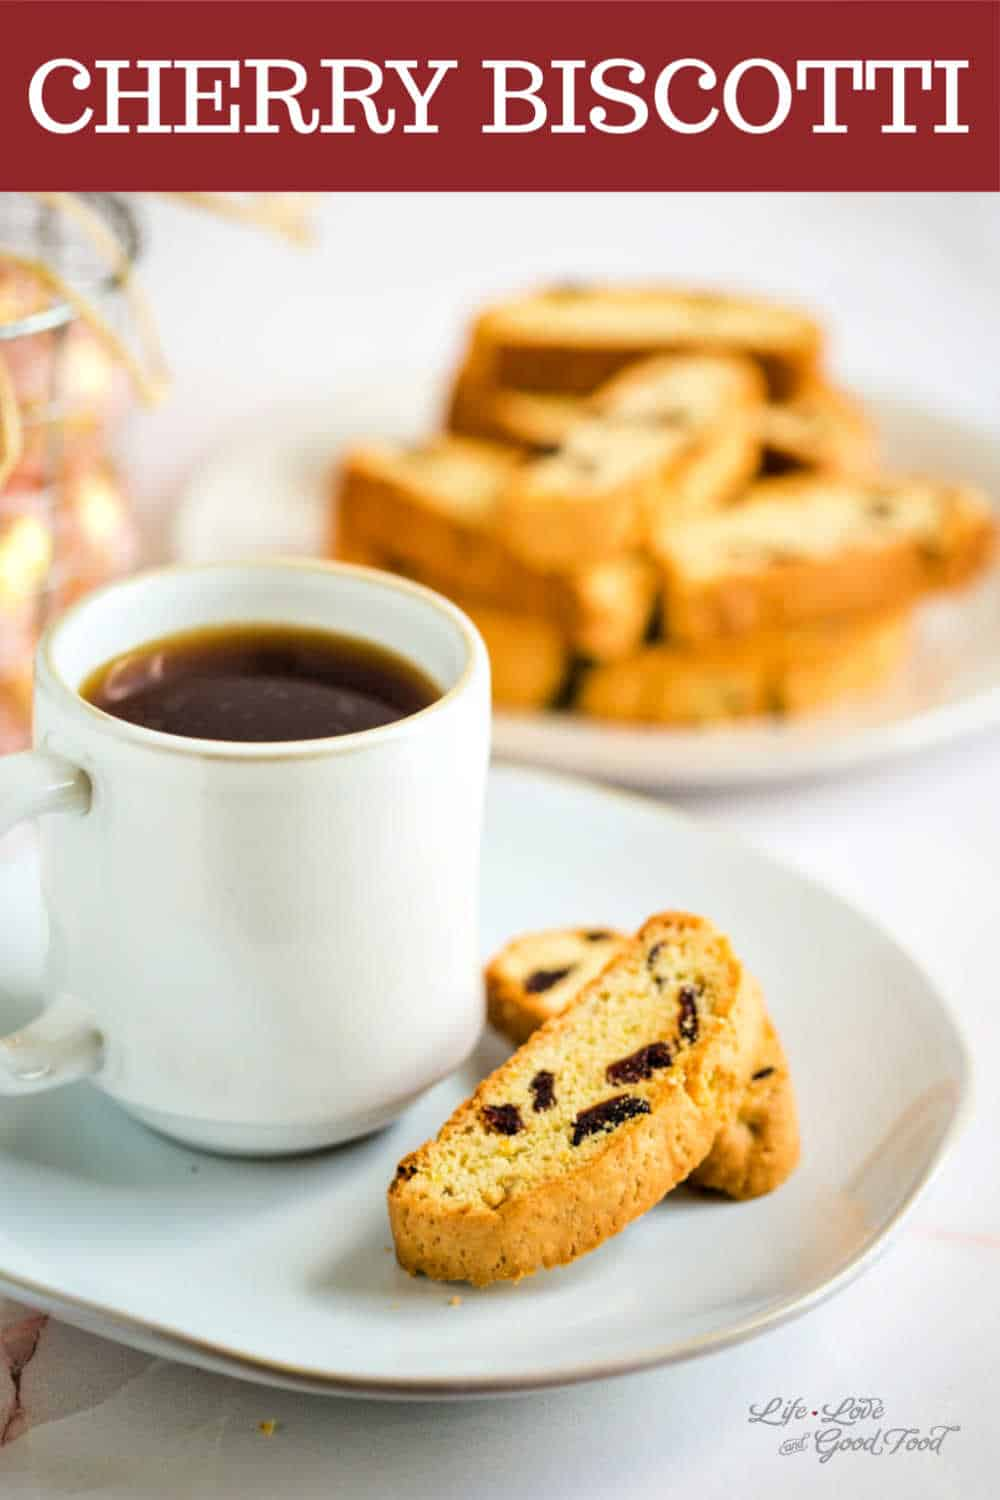 Cherry Biscotti is a vanilla biscotti cookie studded with dried cherries with hints of both orange and almond flavors. This twice-baked Italian cookie is a light and crispy cherry dessert that is delicious served with coffee or tea.